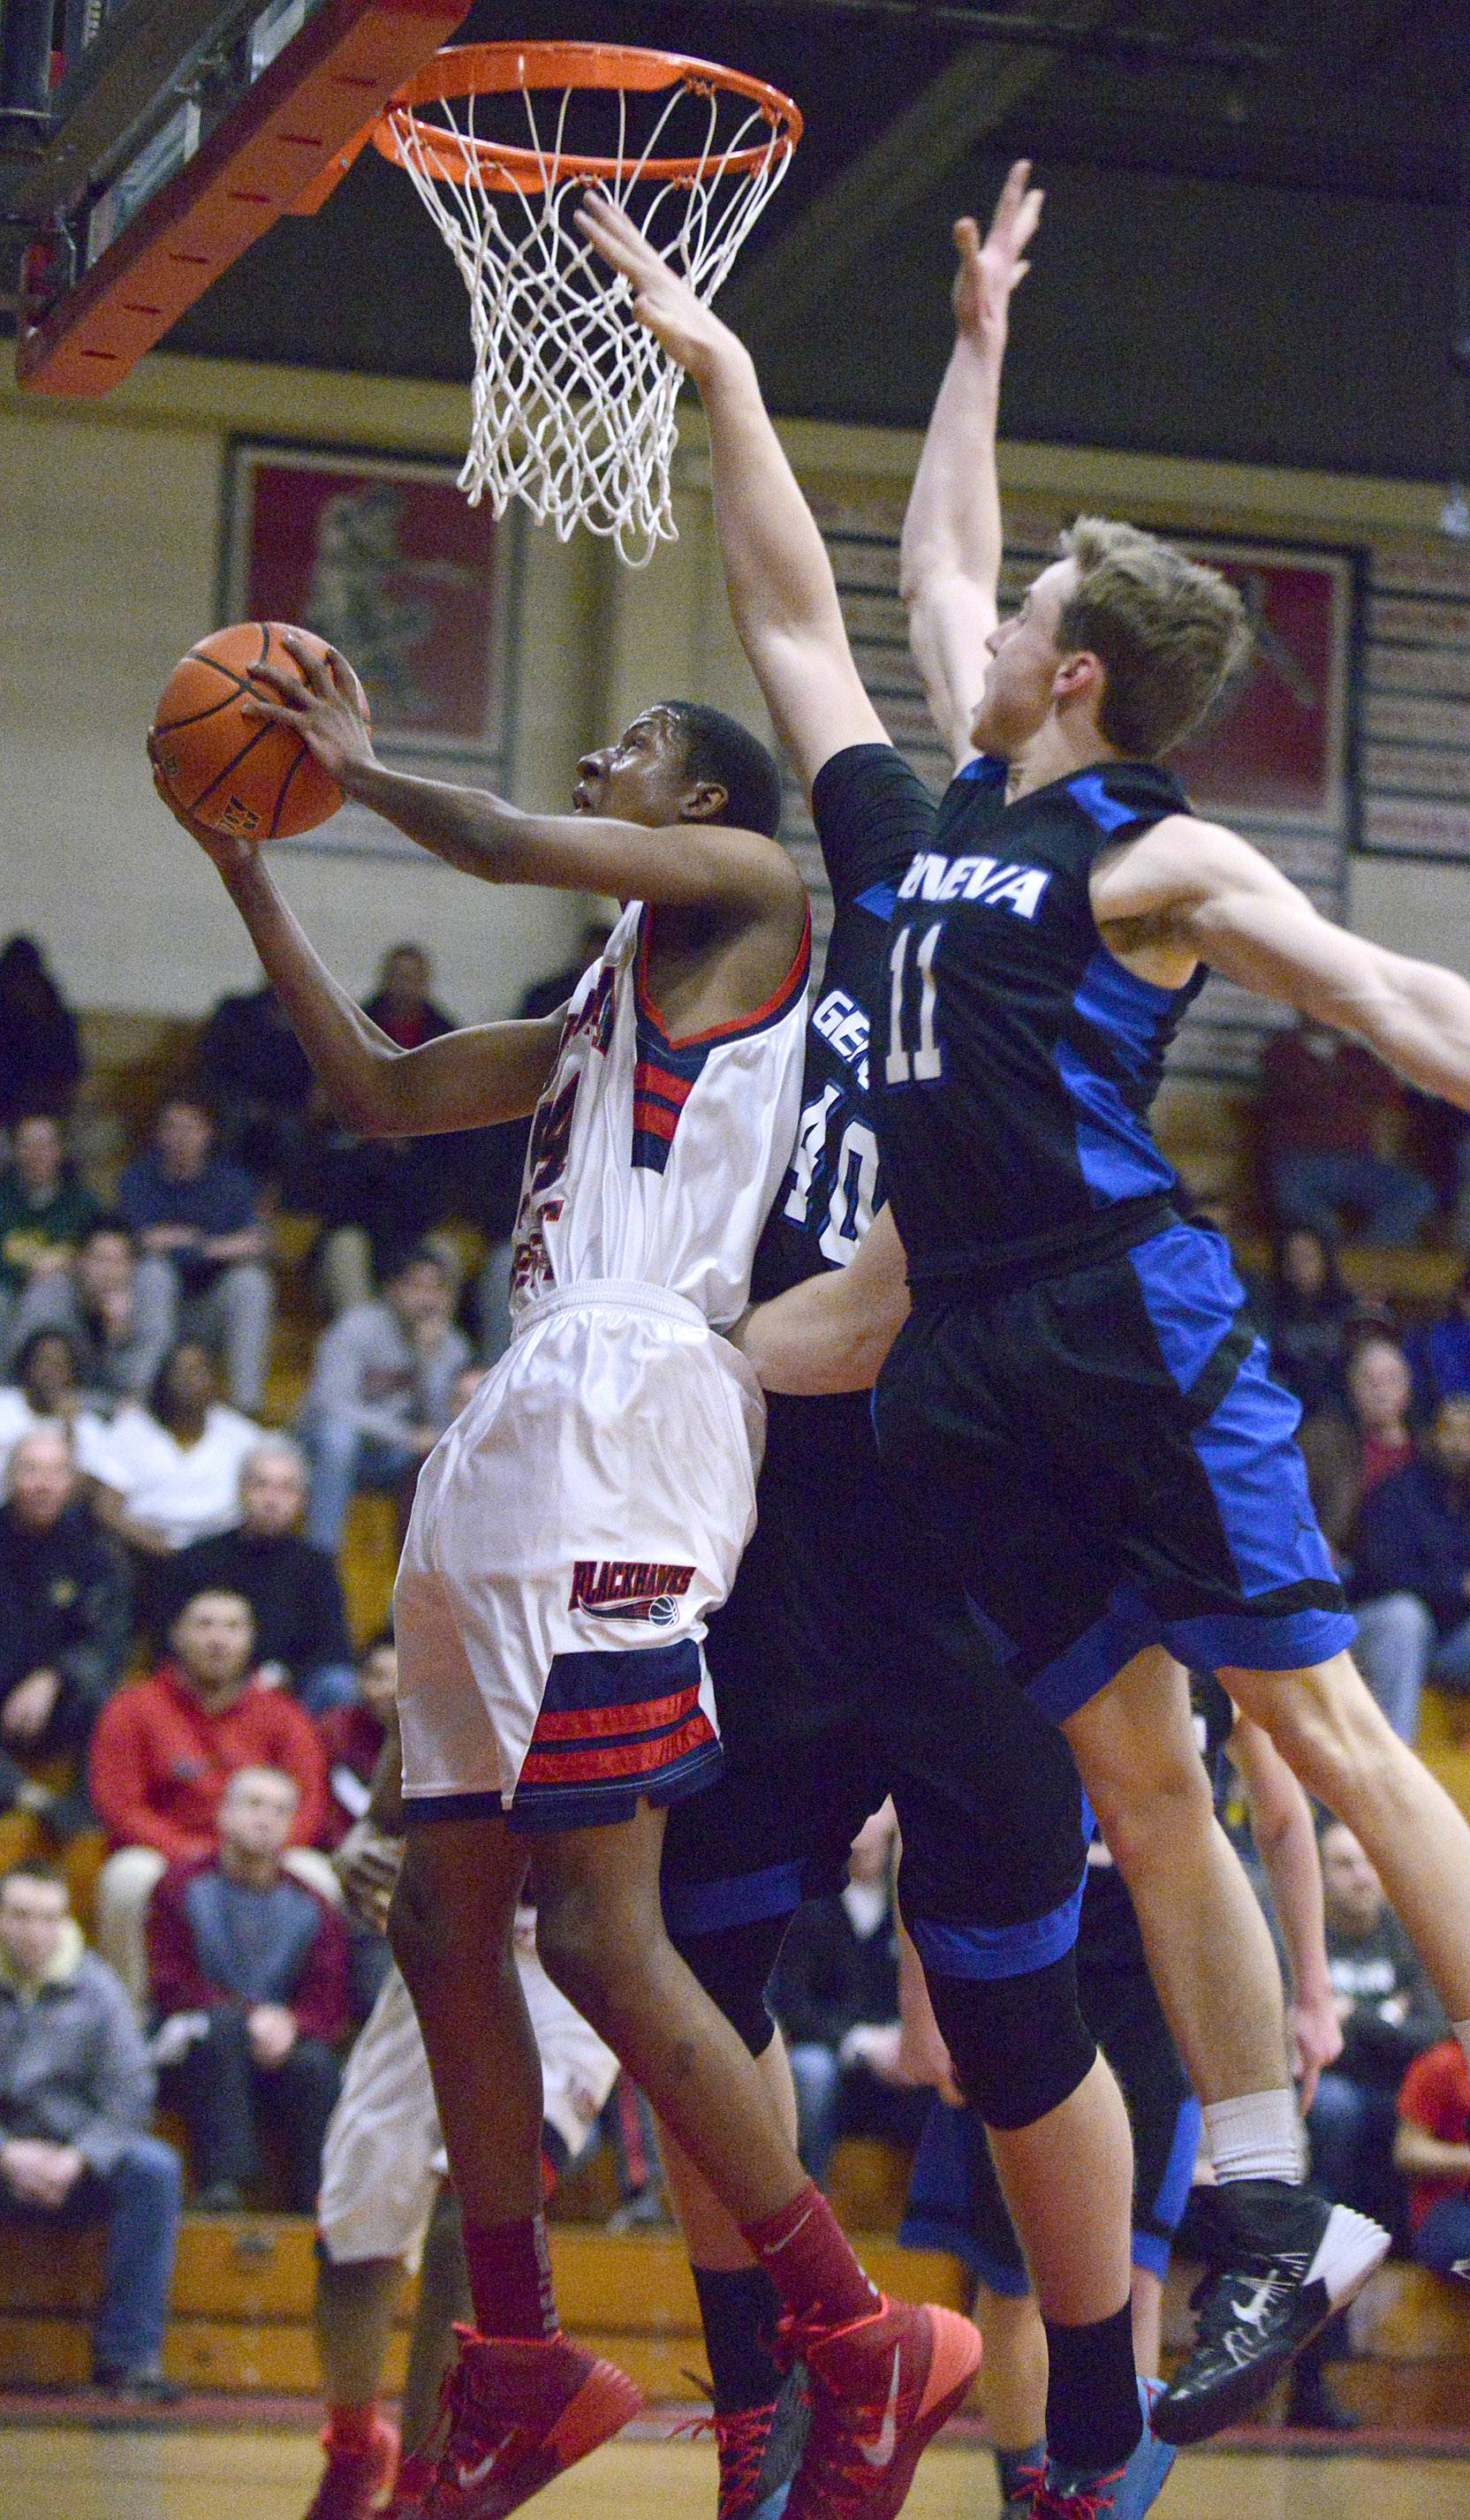 West Aurora's Carleton Williams is swarmed by Geneva's Cameron Cook and Loudon Vollbrecht in the second quarter.